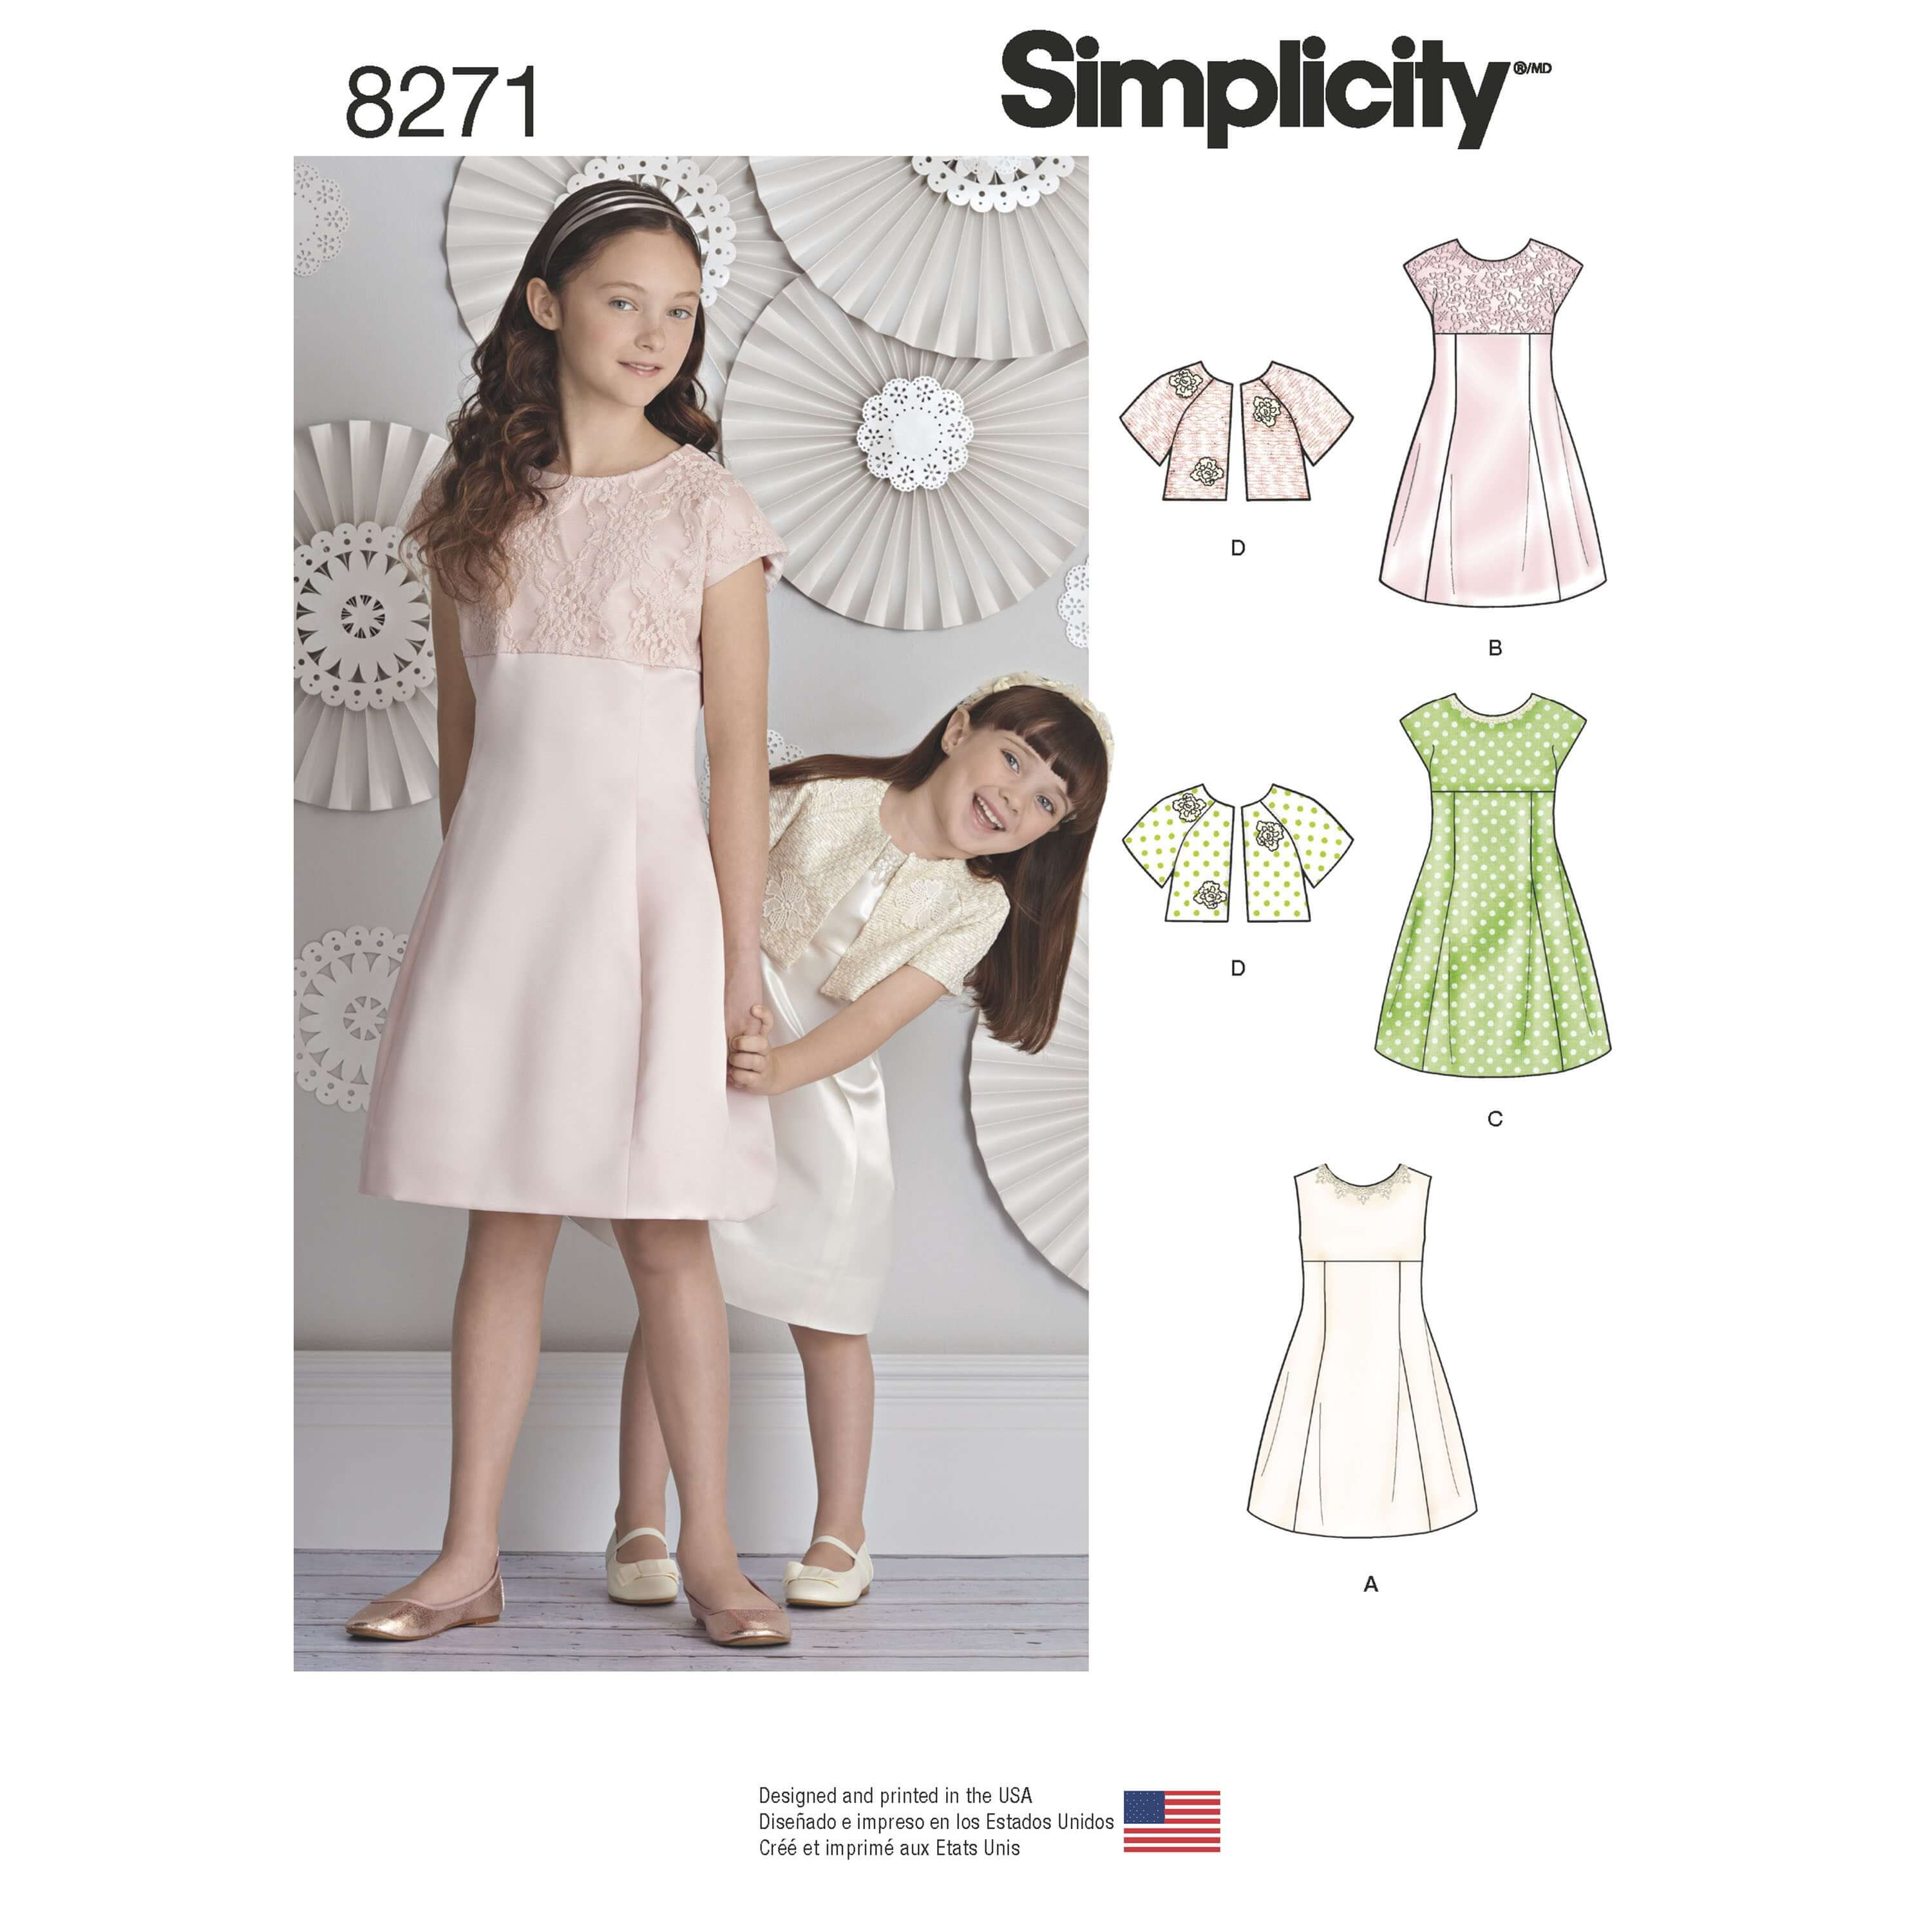 Simplicity Sewing Pattern 8271 Girl's Special Occasion Dress and Bolero Jacket